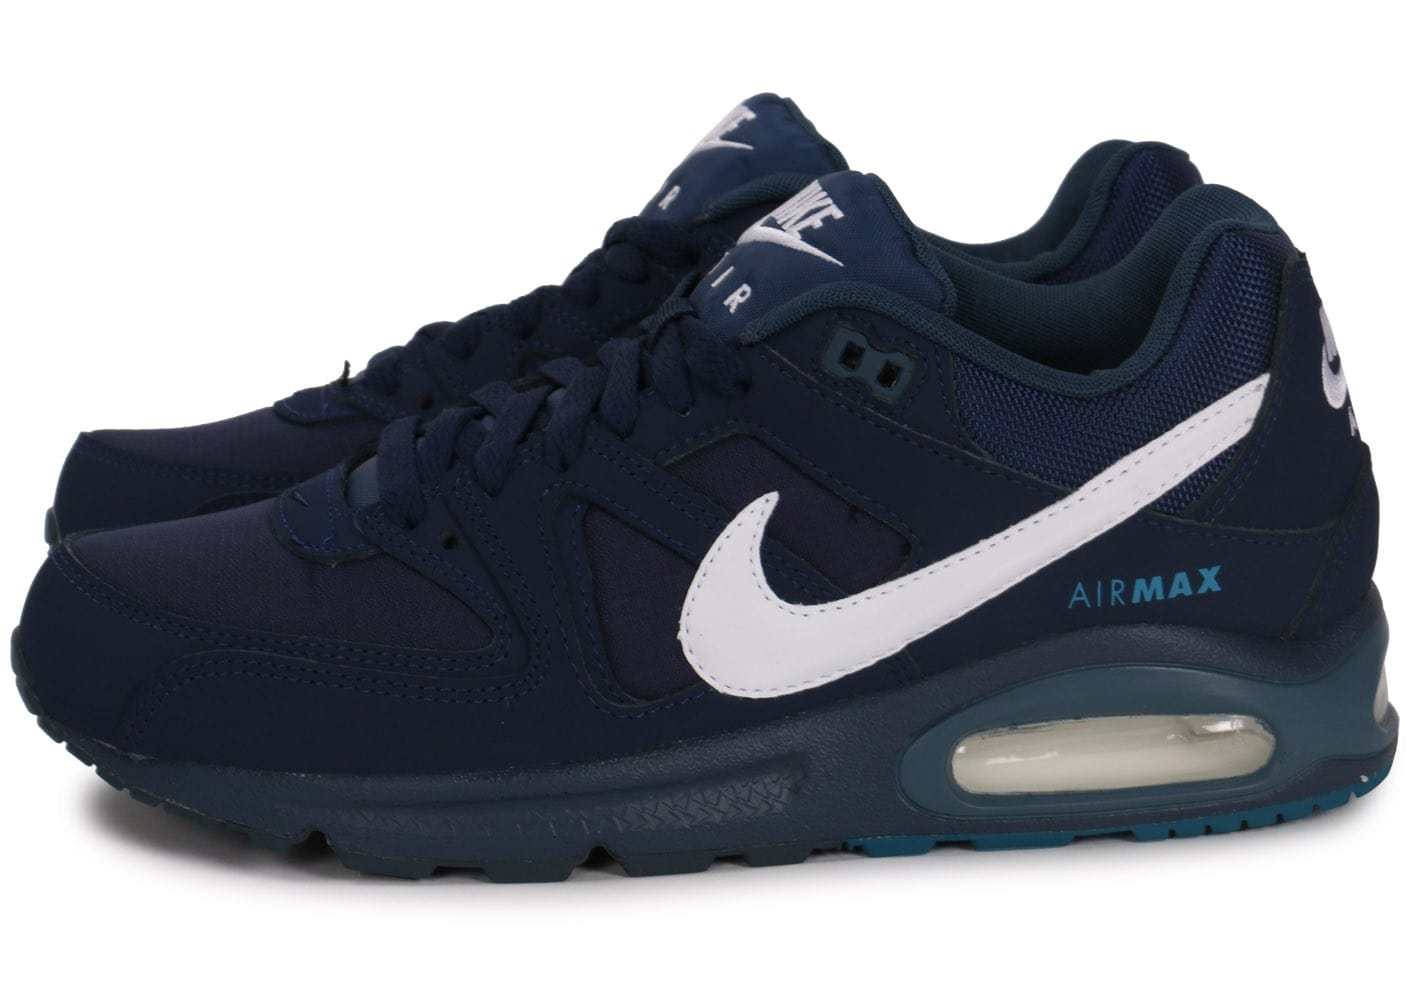 air max command homme 43 allow project.eu